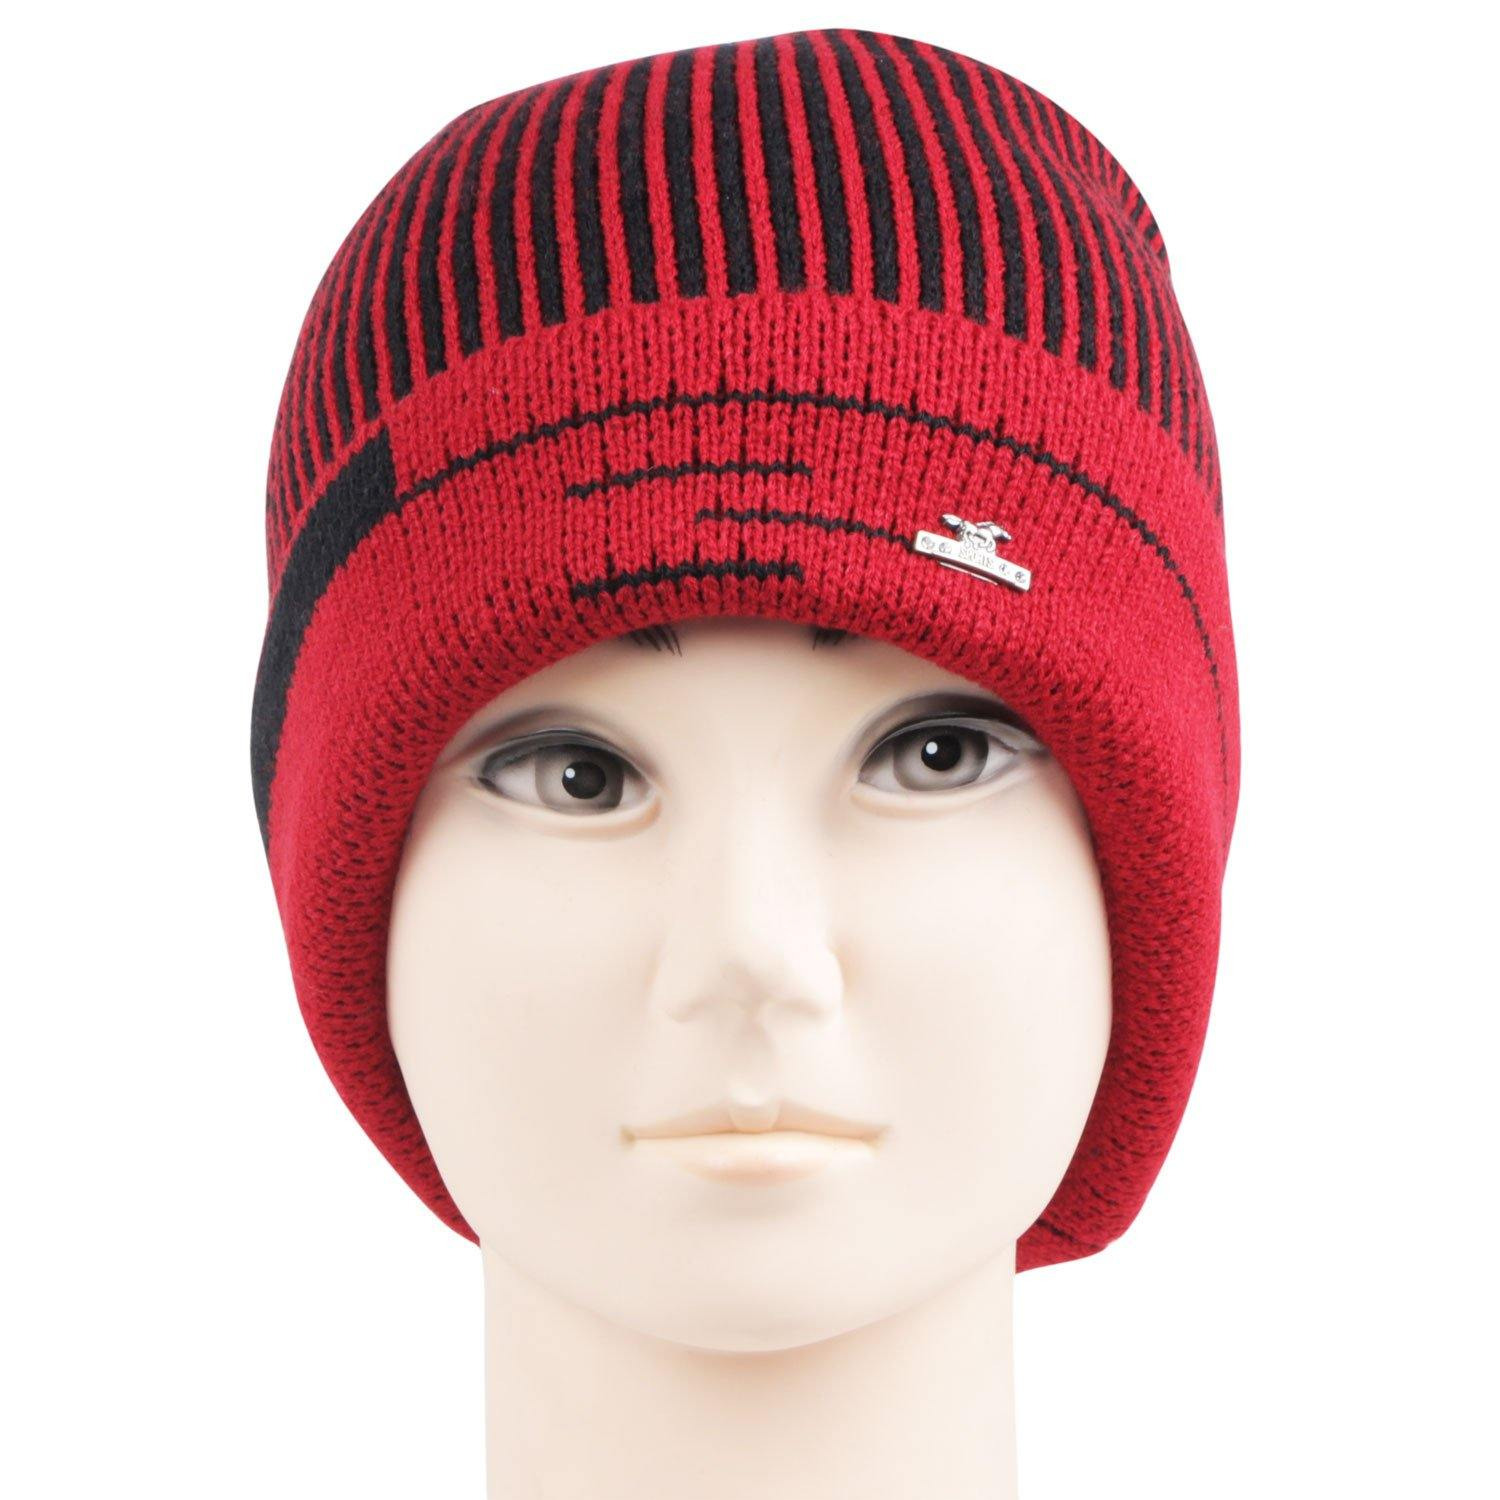 Men's Knitted Woolen Cap For Winters - Red